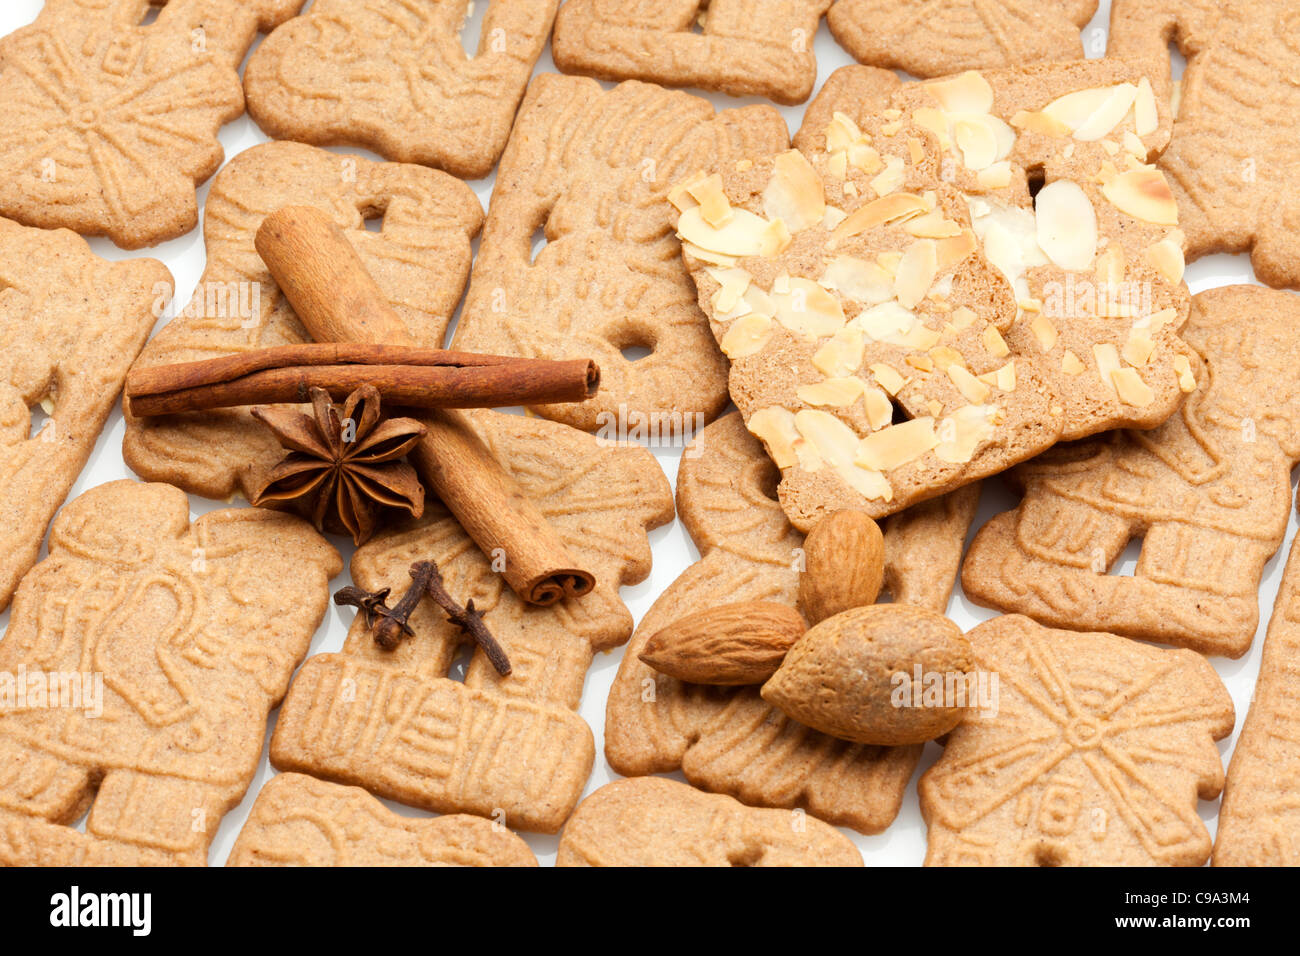 Dutch Speculaas Christmas Cookies Almonds And Spices Stock Photo